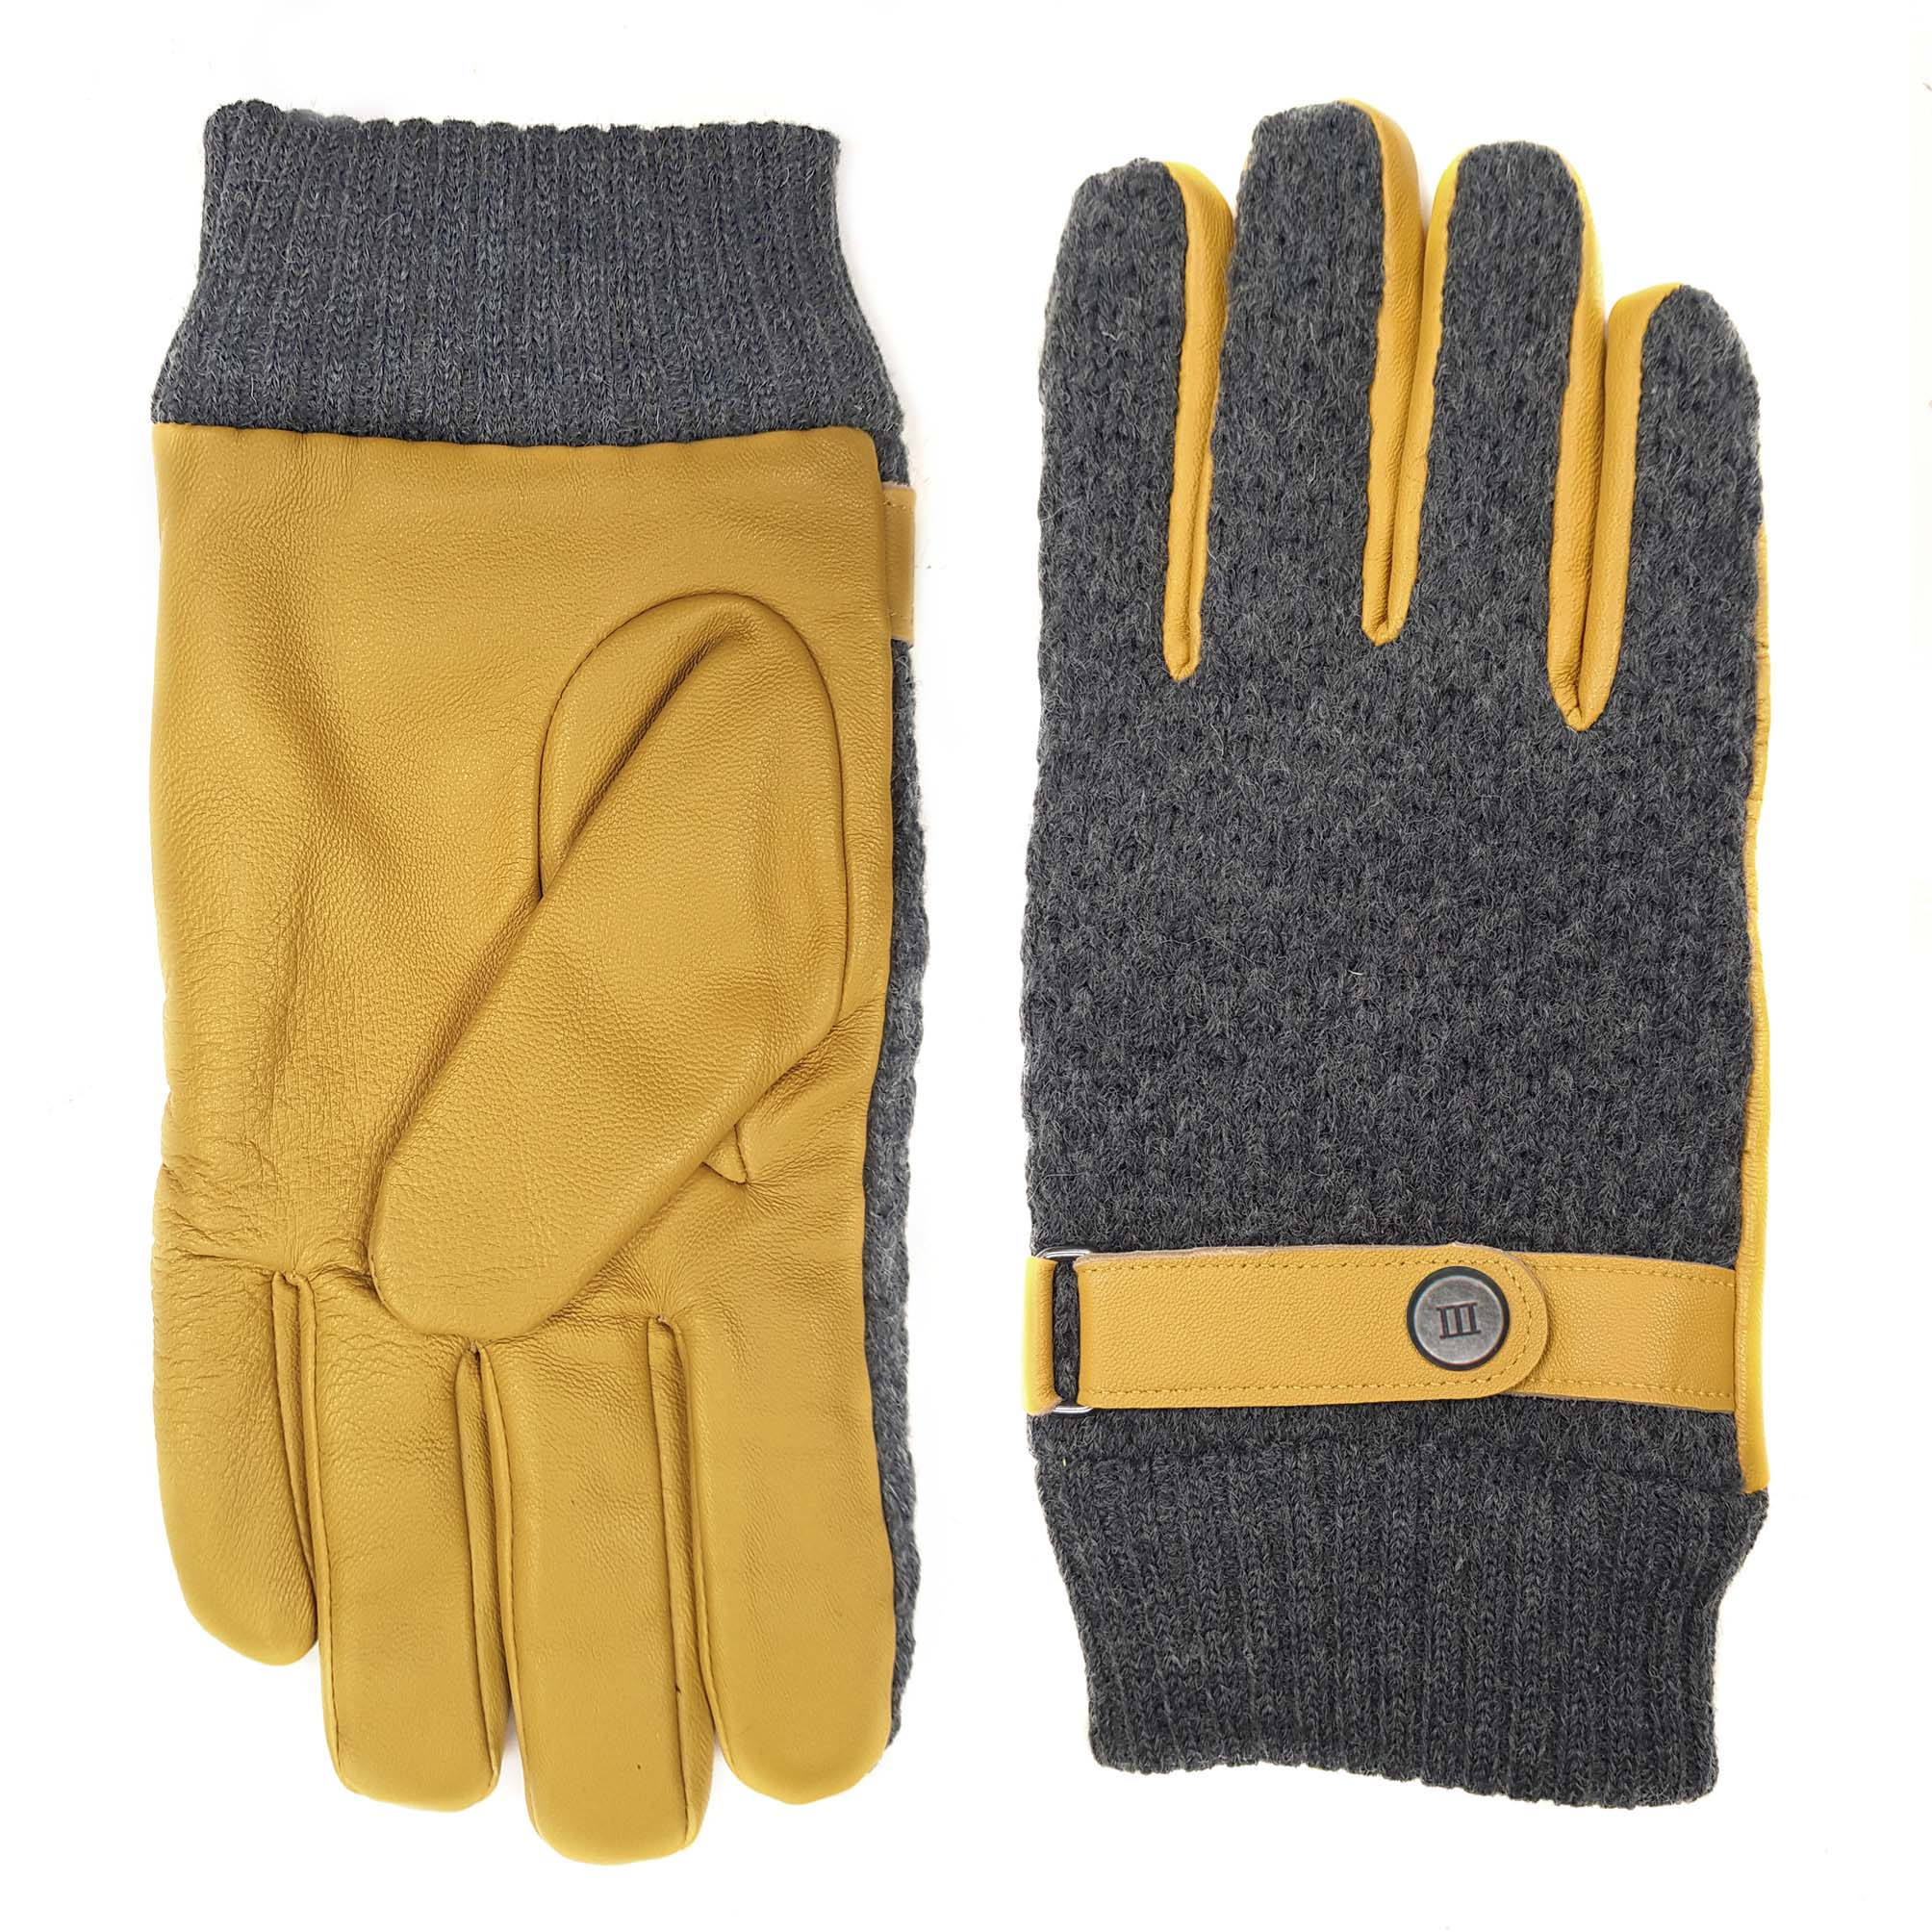 Jorian | Gloves knitted and leather ochre yellow